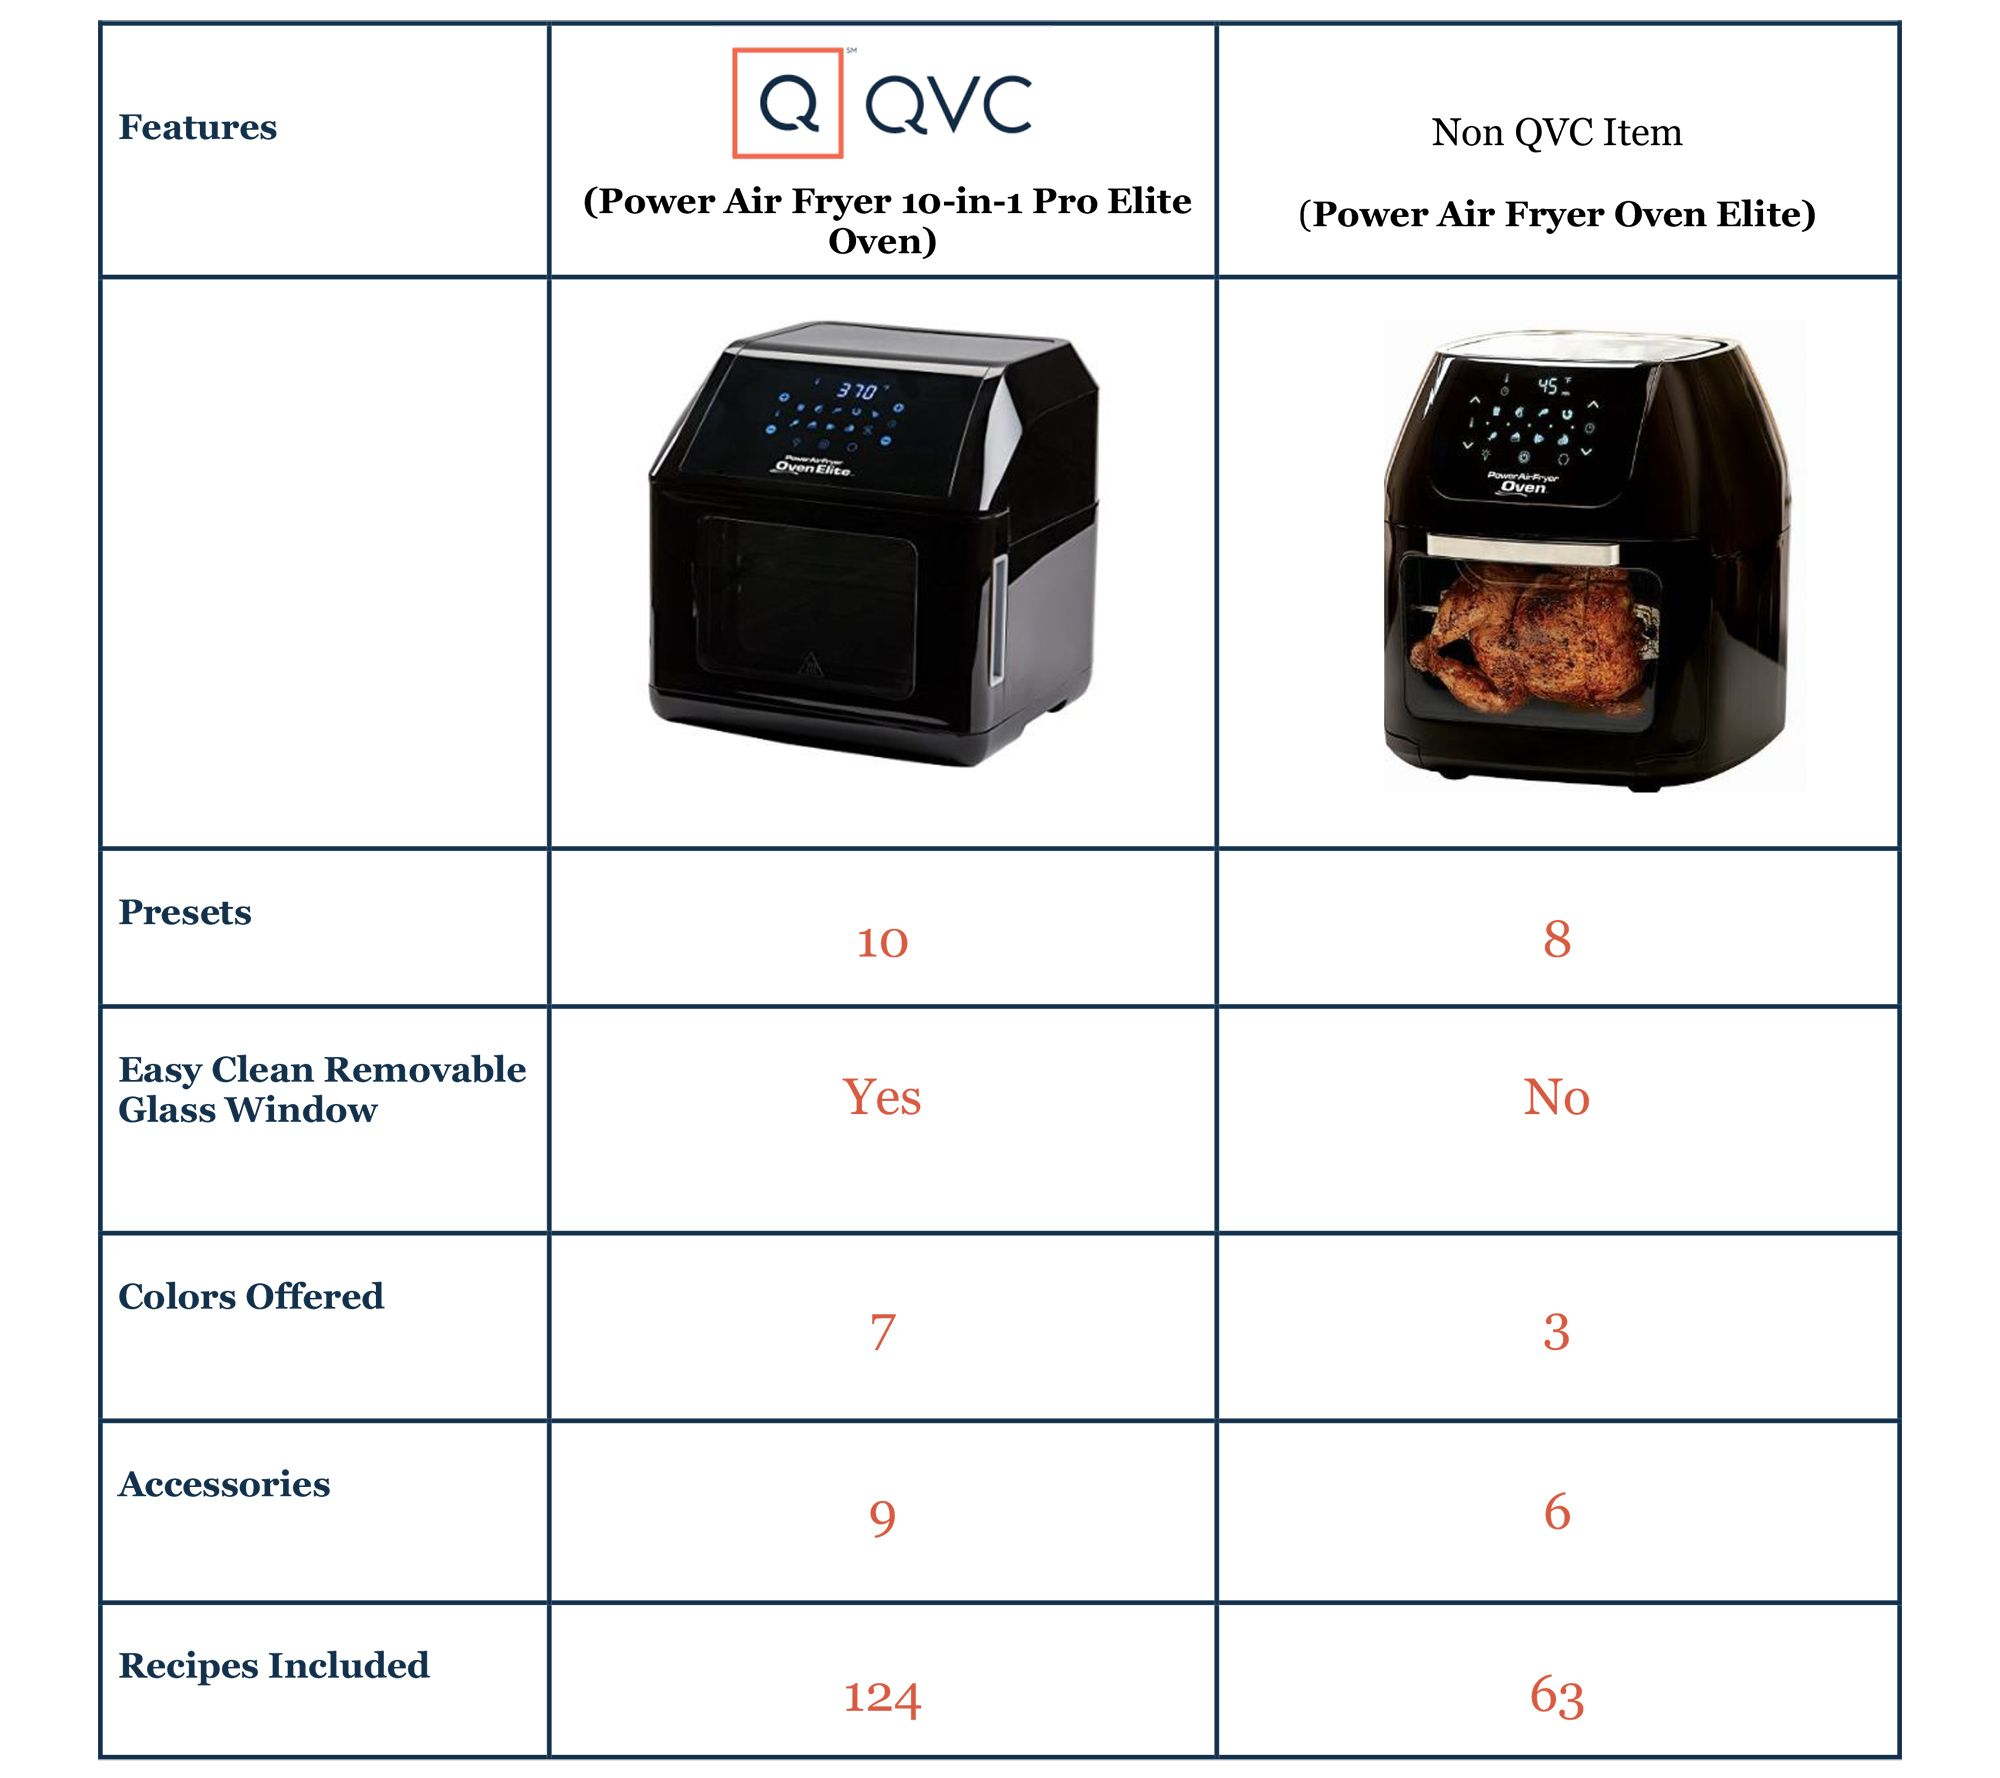 Power Air Fryer 10-in-1 Pro Elite Oven 6-qt with Cookbook ...